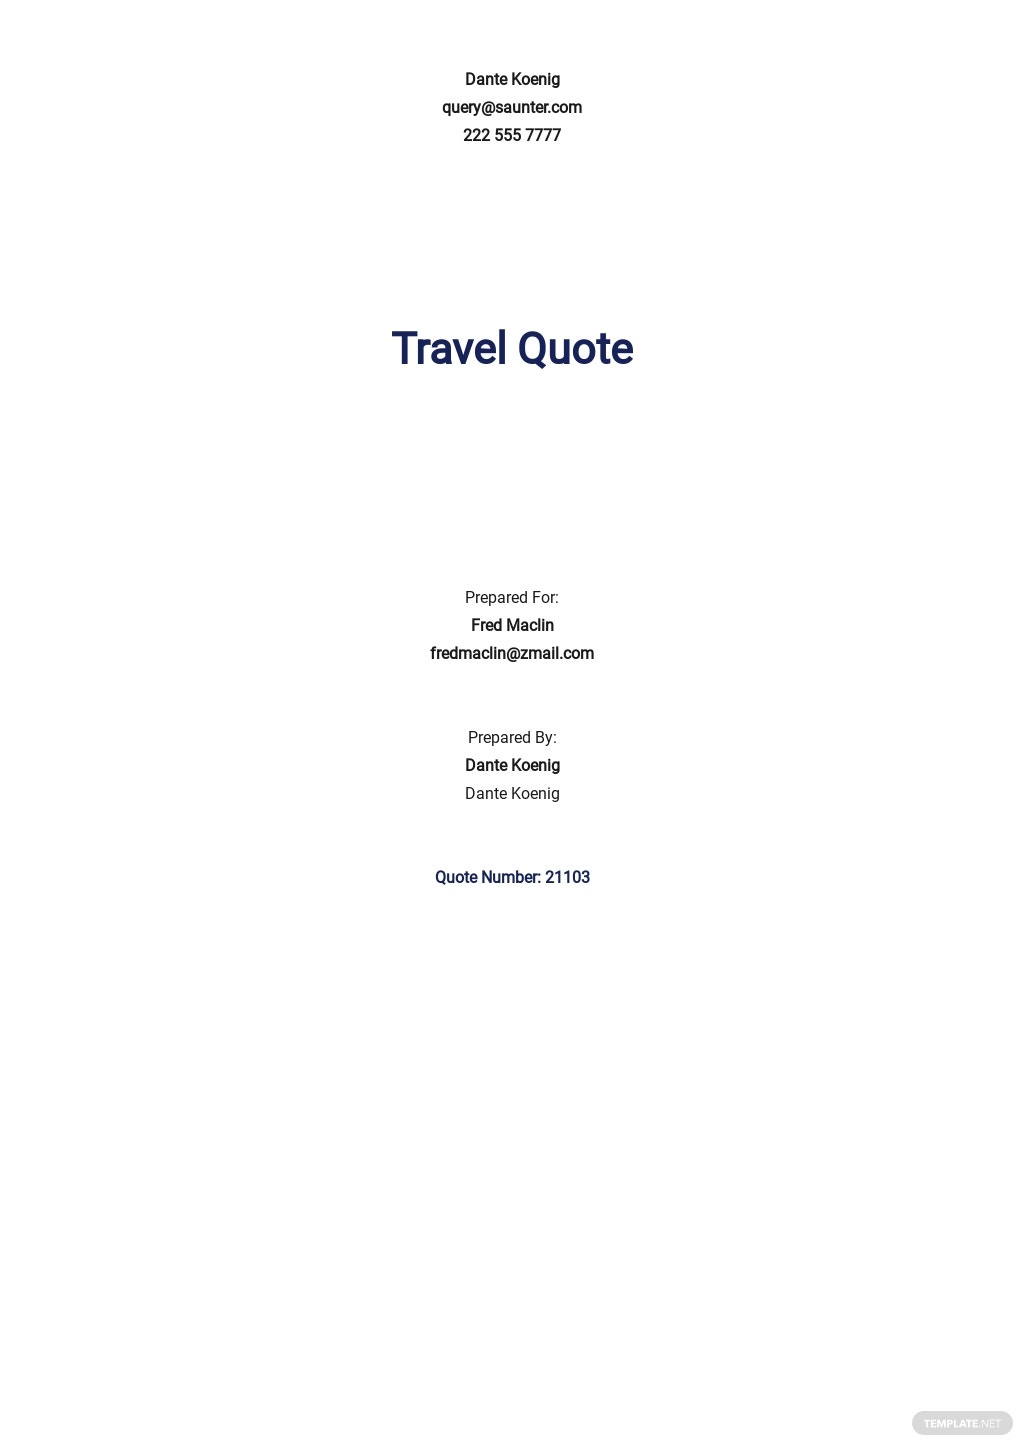 Travel Quotation Template.jpe